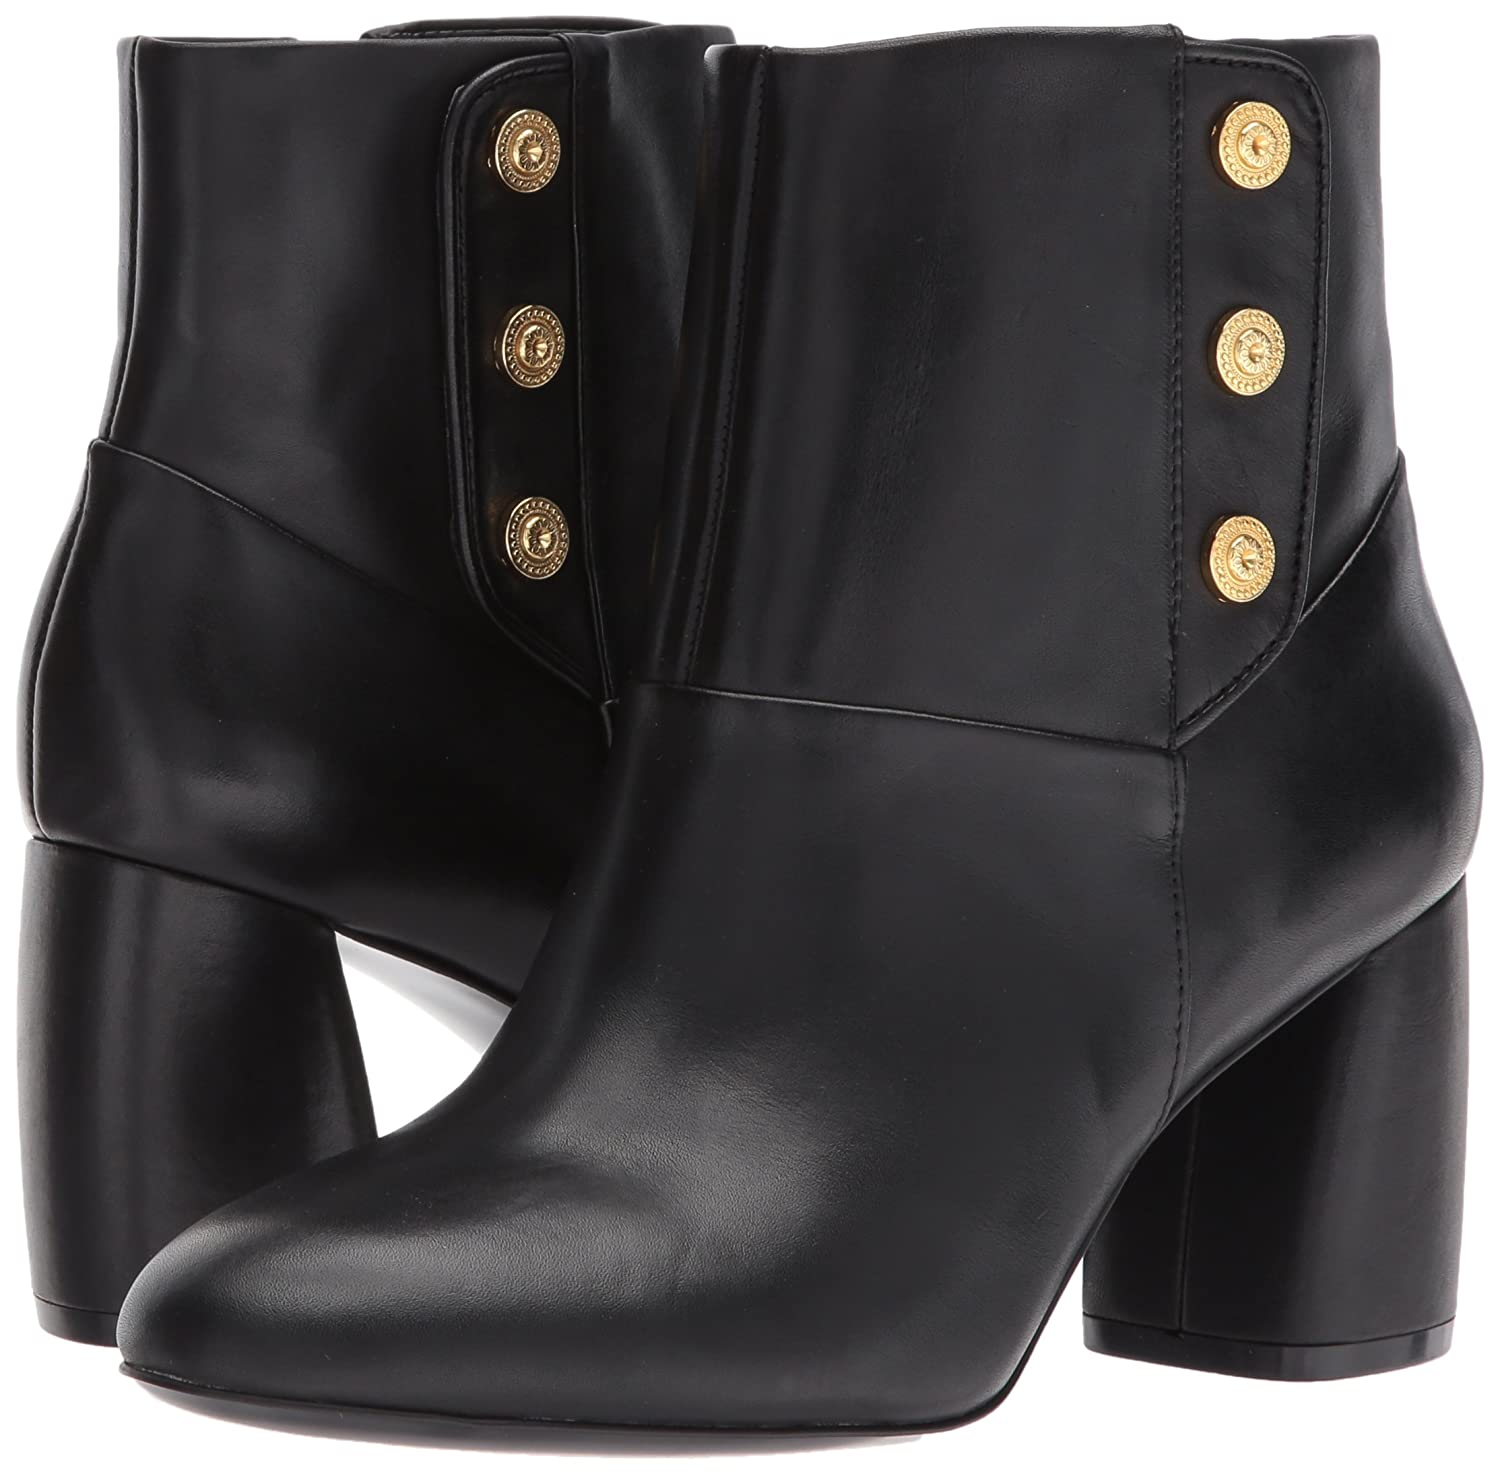 Nine West Women's Kirtley Leather Ankle Boot B01ND428C3 7.5 B(M) US|Black